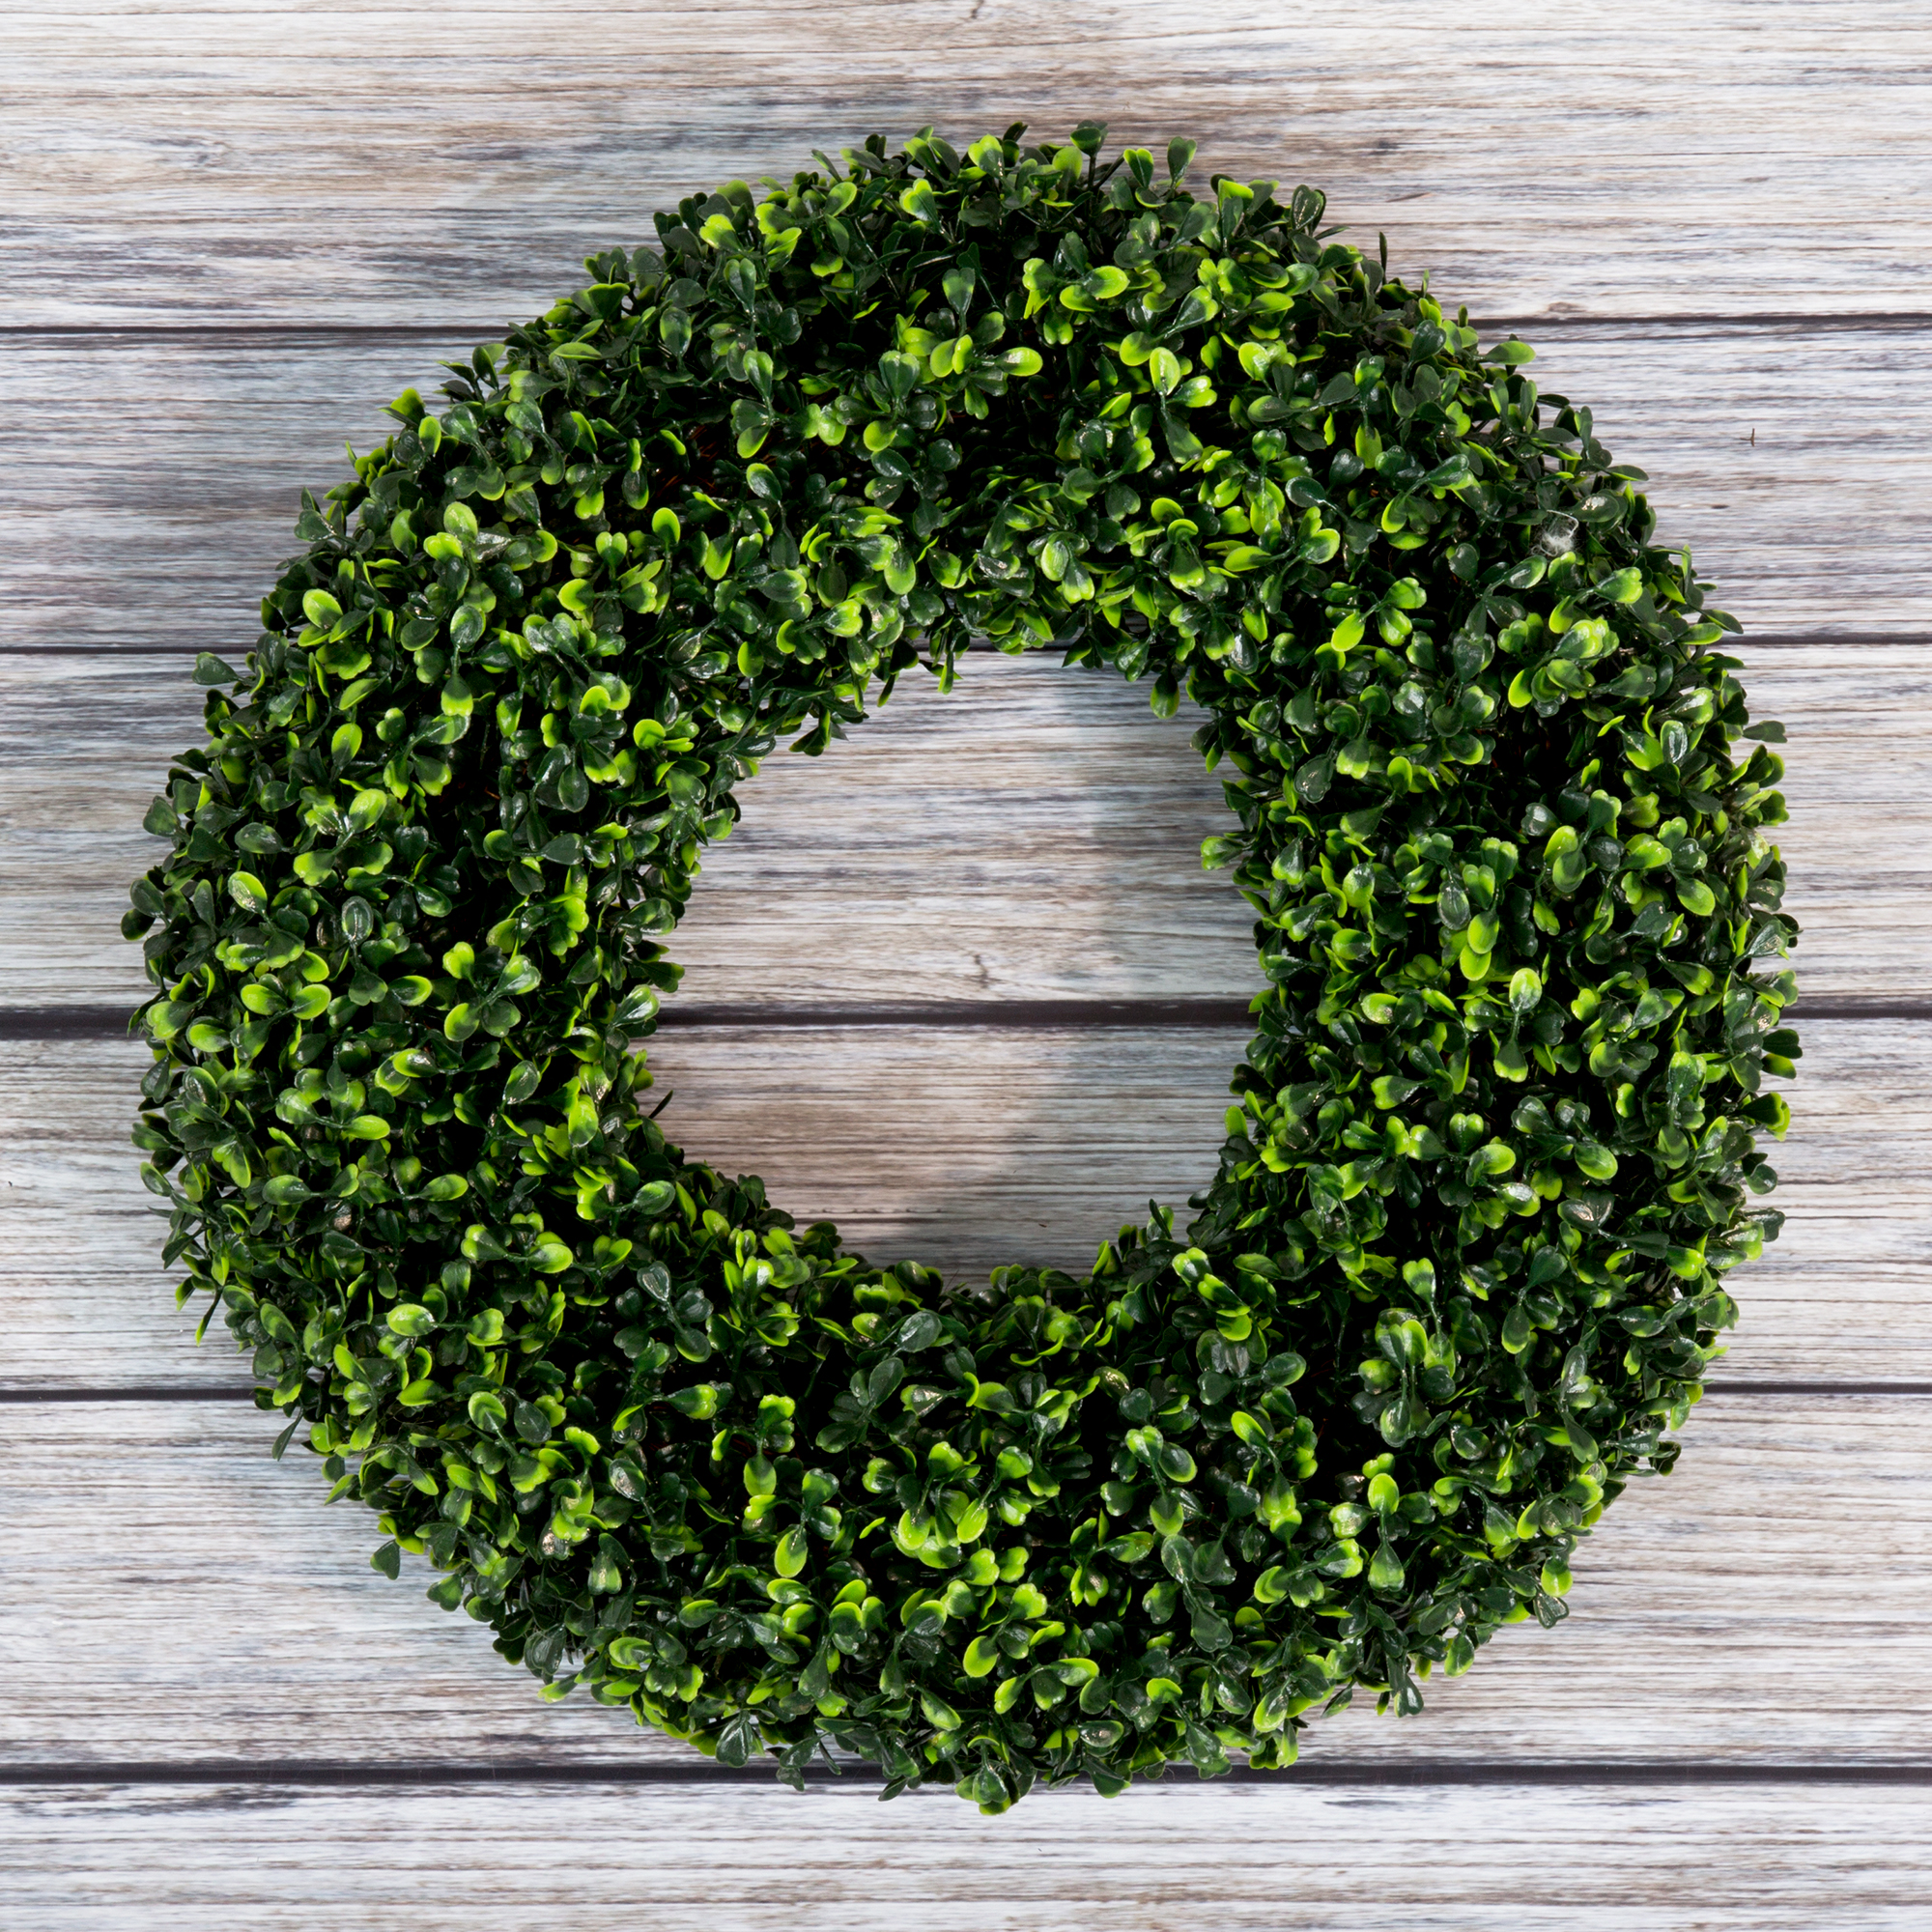 Boxwood Wreath, Artificial Wreath for the Front Door by Pure Garden, Home Decor, UV Resistant– 16.5 Inches